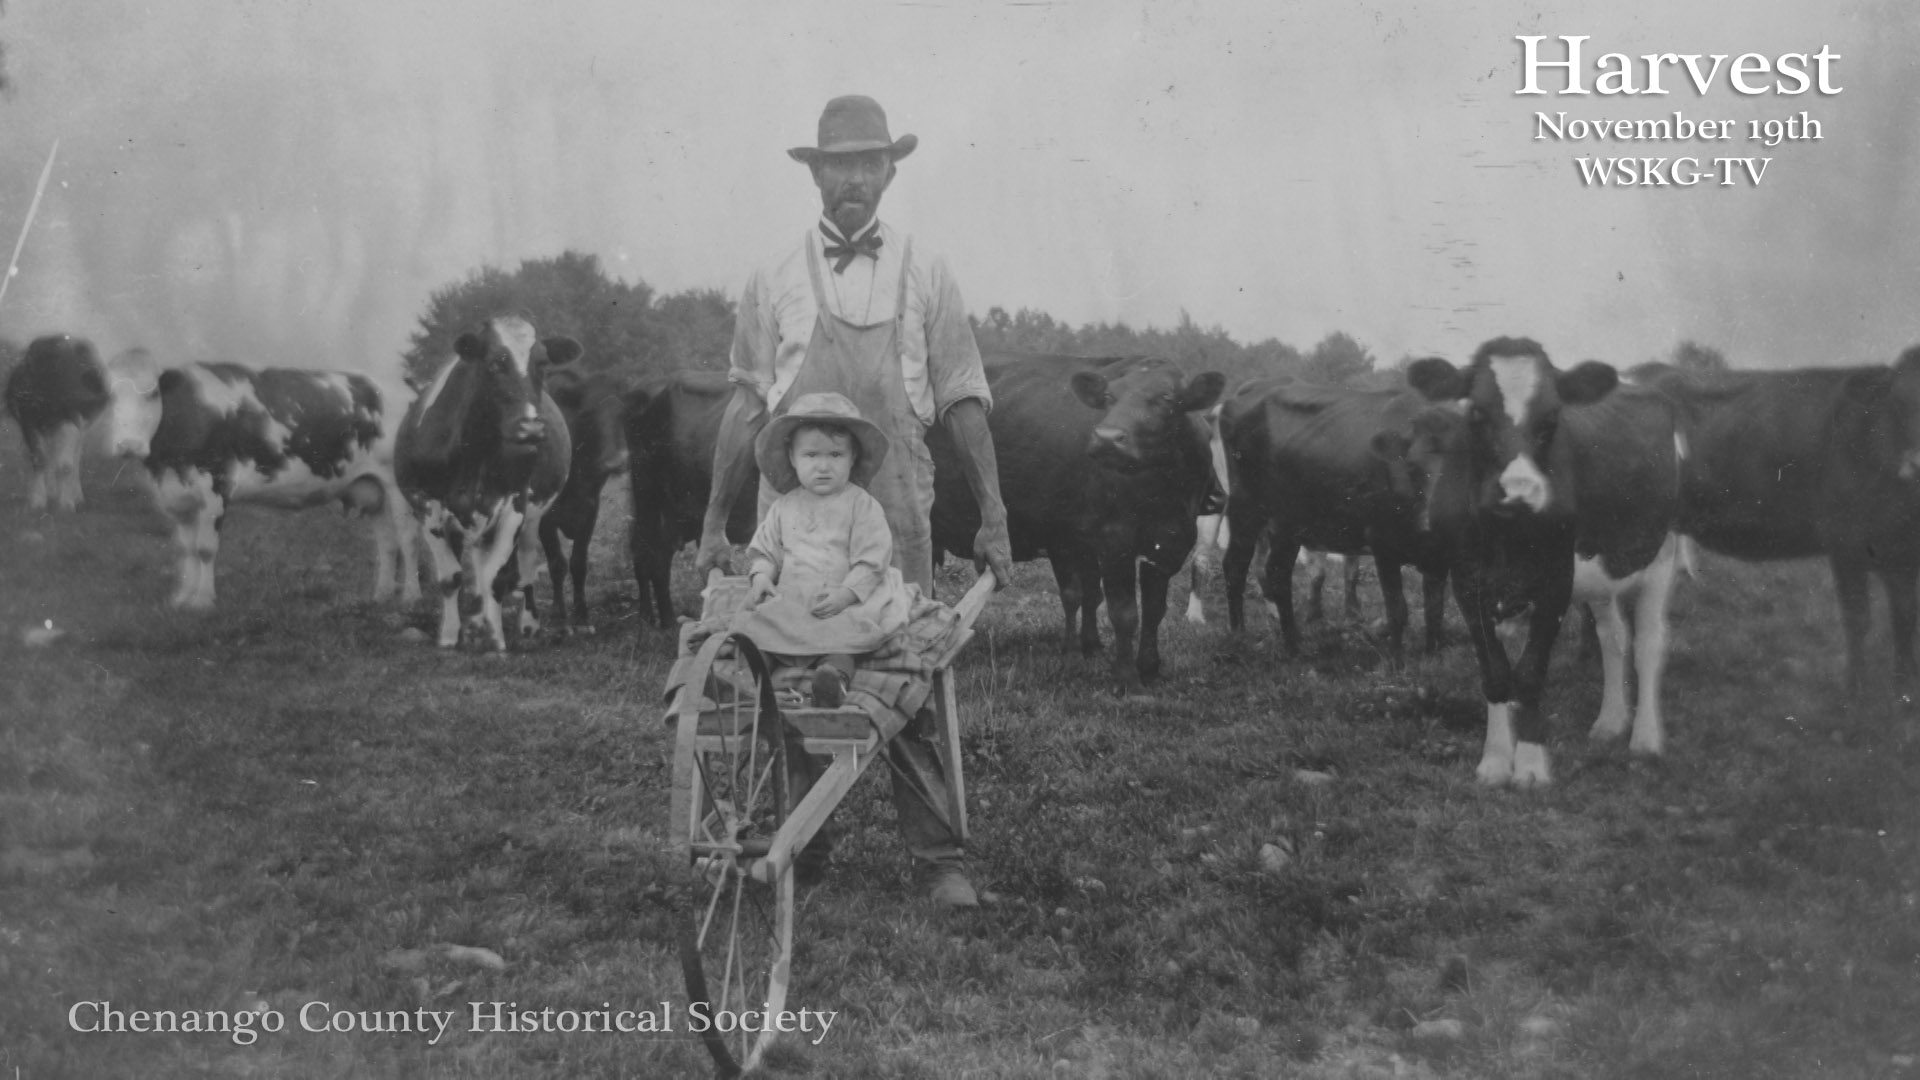 A farmer takes his daughter for a ride on a hand cart